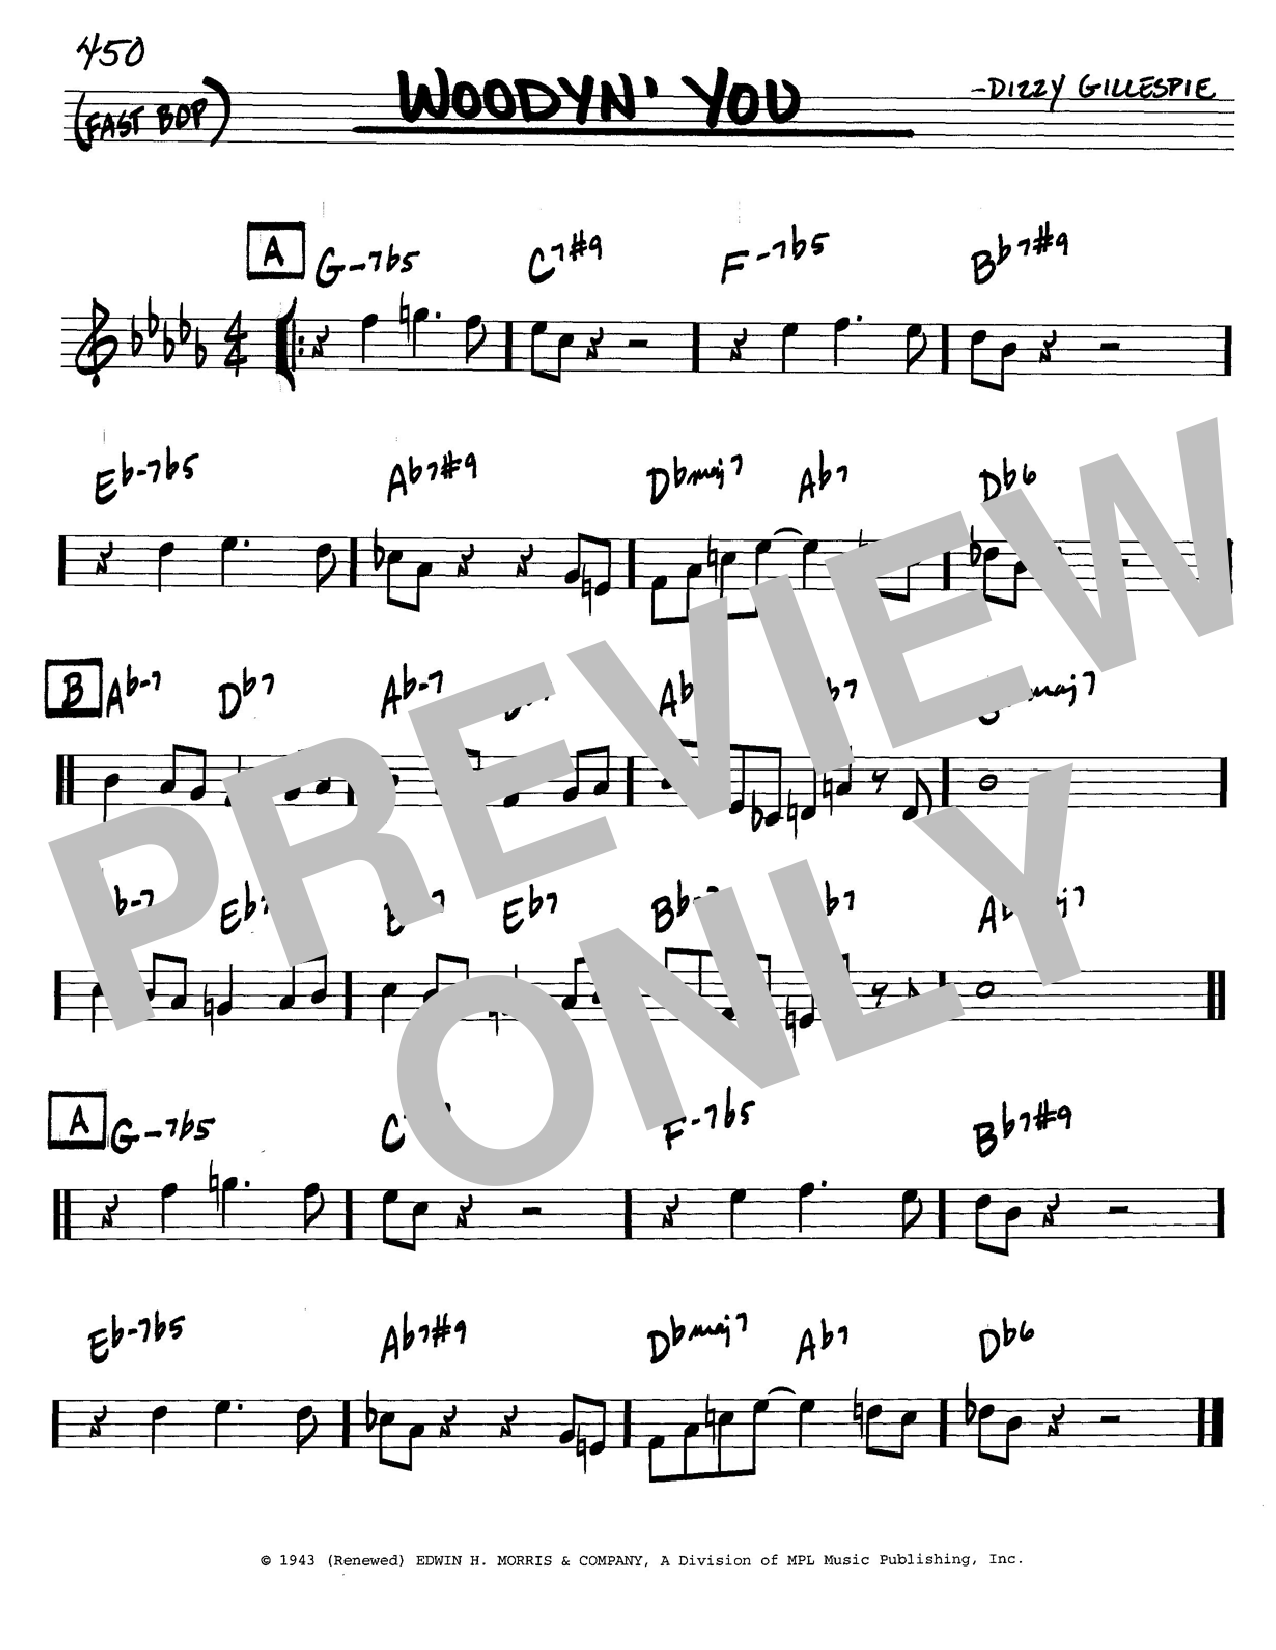 Dizzy Gillespie Woodyn' You sheet music notes and chords. Download Printable PDF.